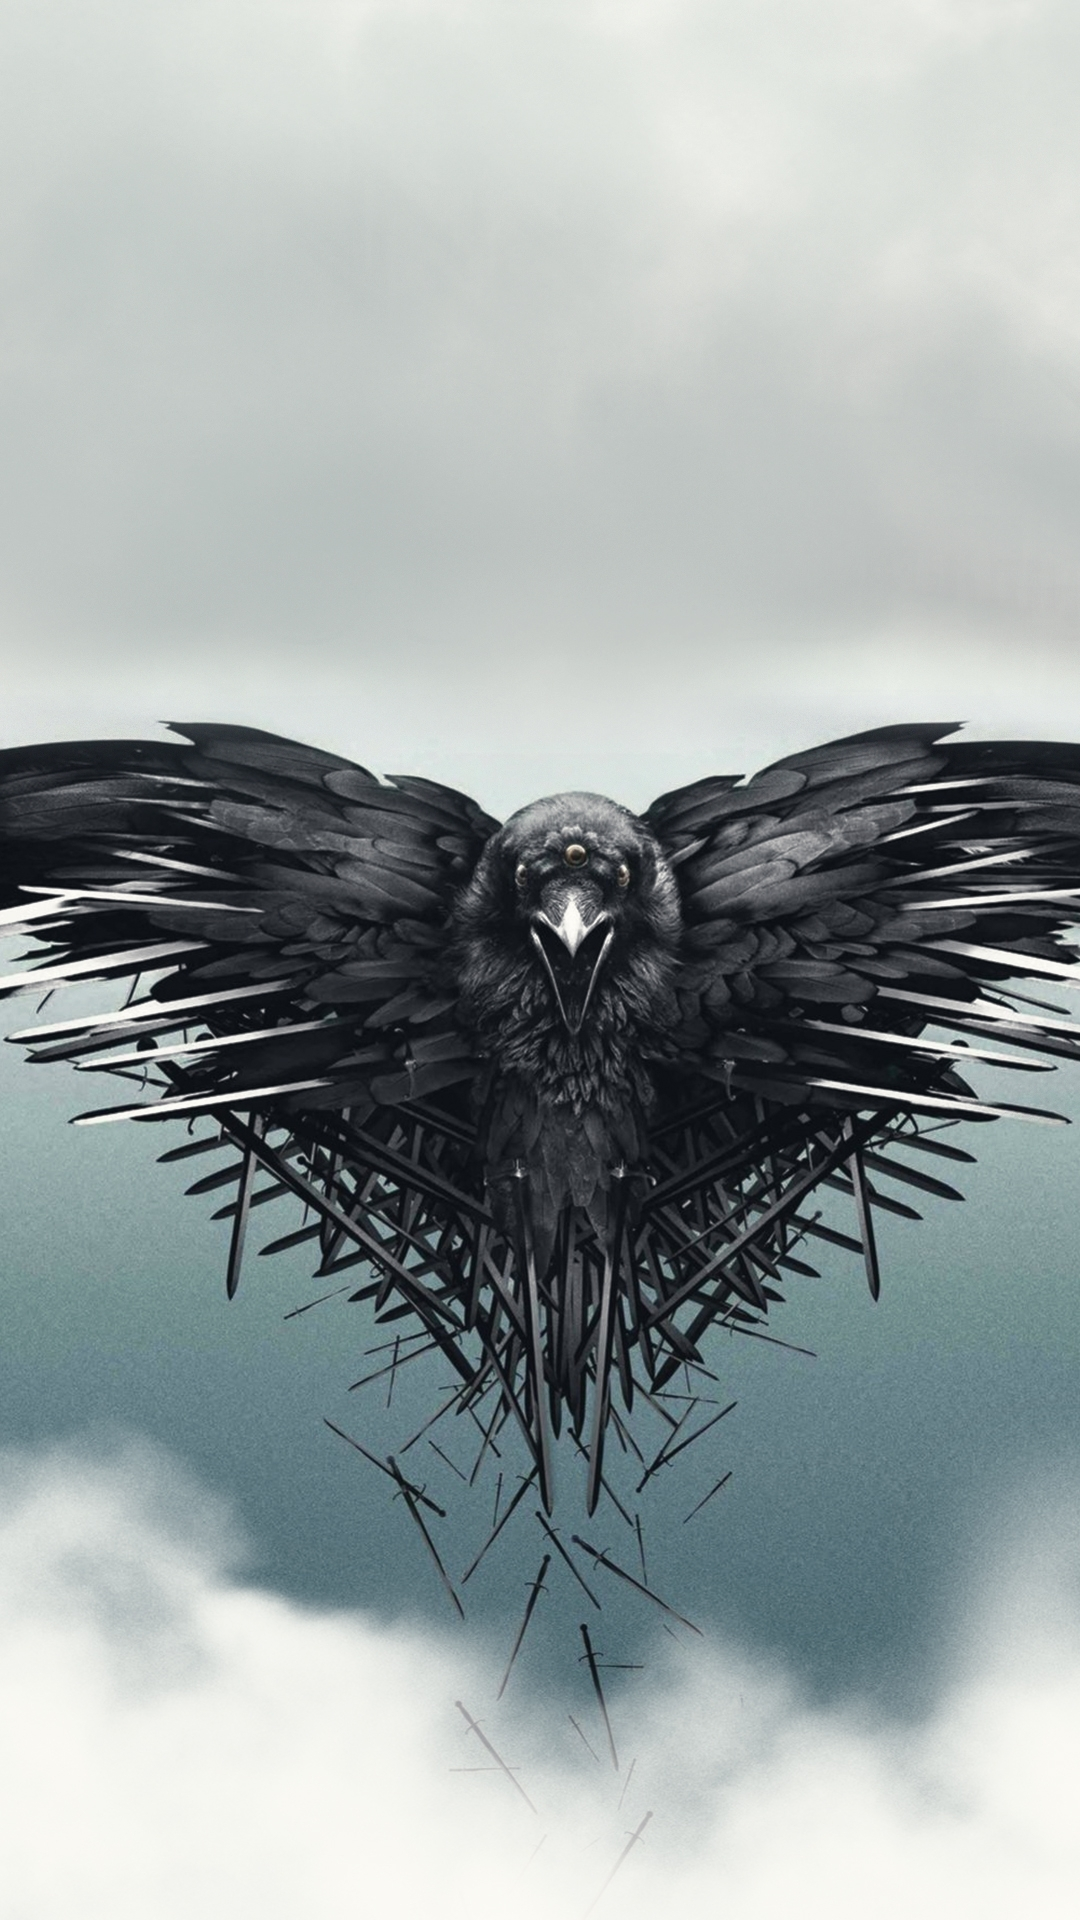 free hd game of thrones phone wallpaper3932